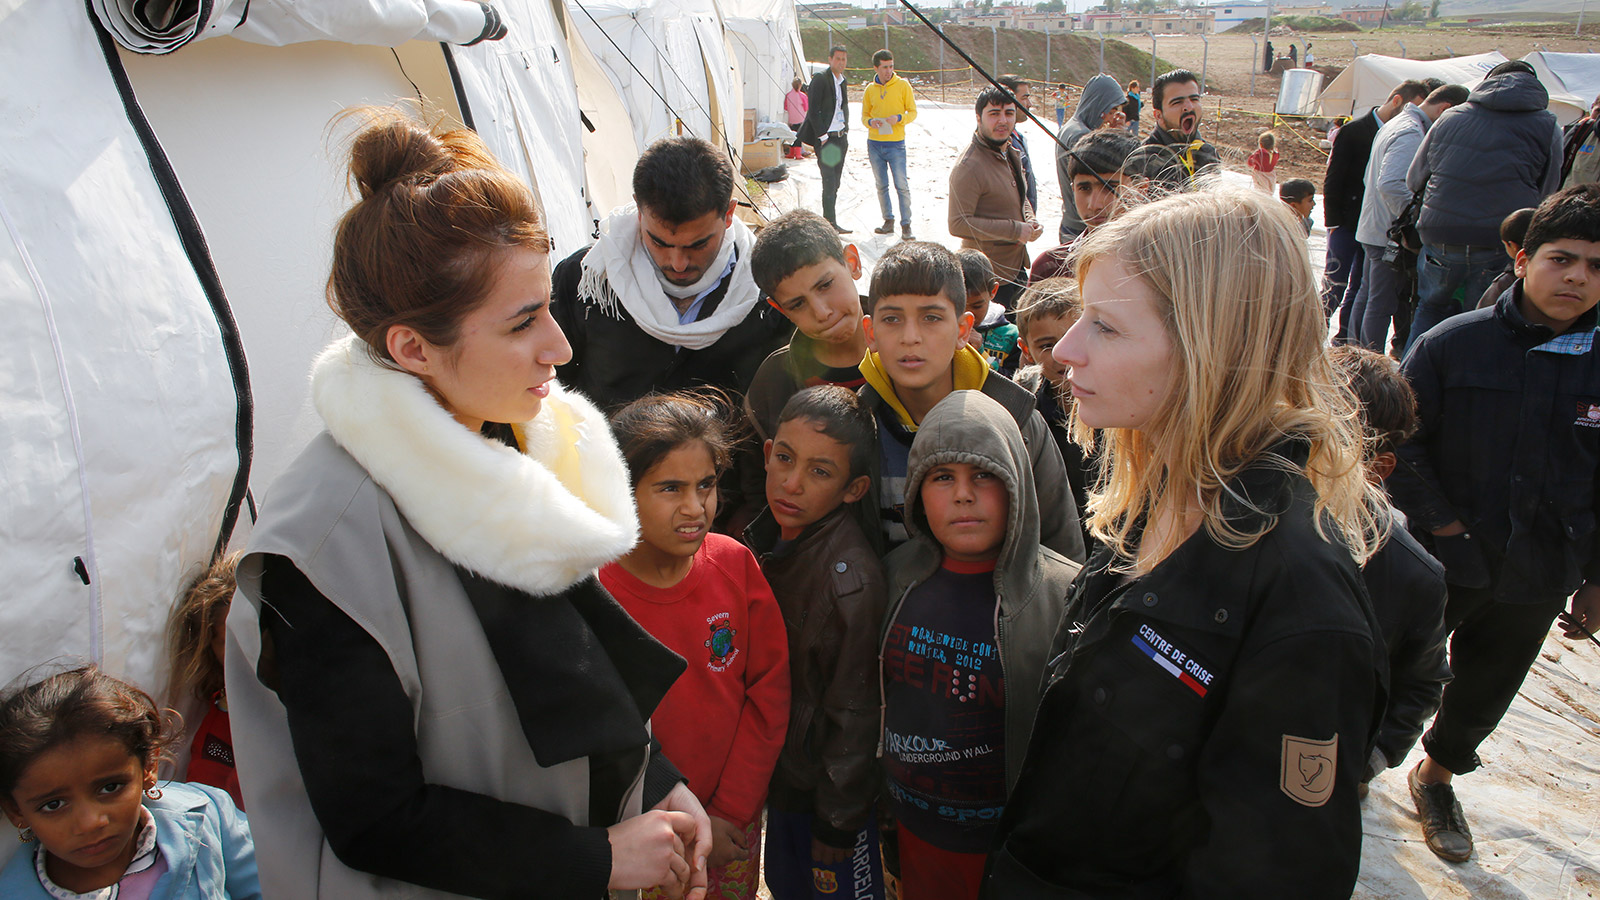 A woman is talking to a French aid worker in front of a row of tents at a refugee camp. Several children and a couple of men are gathering around them.